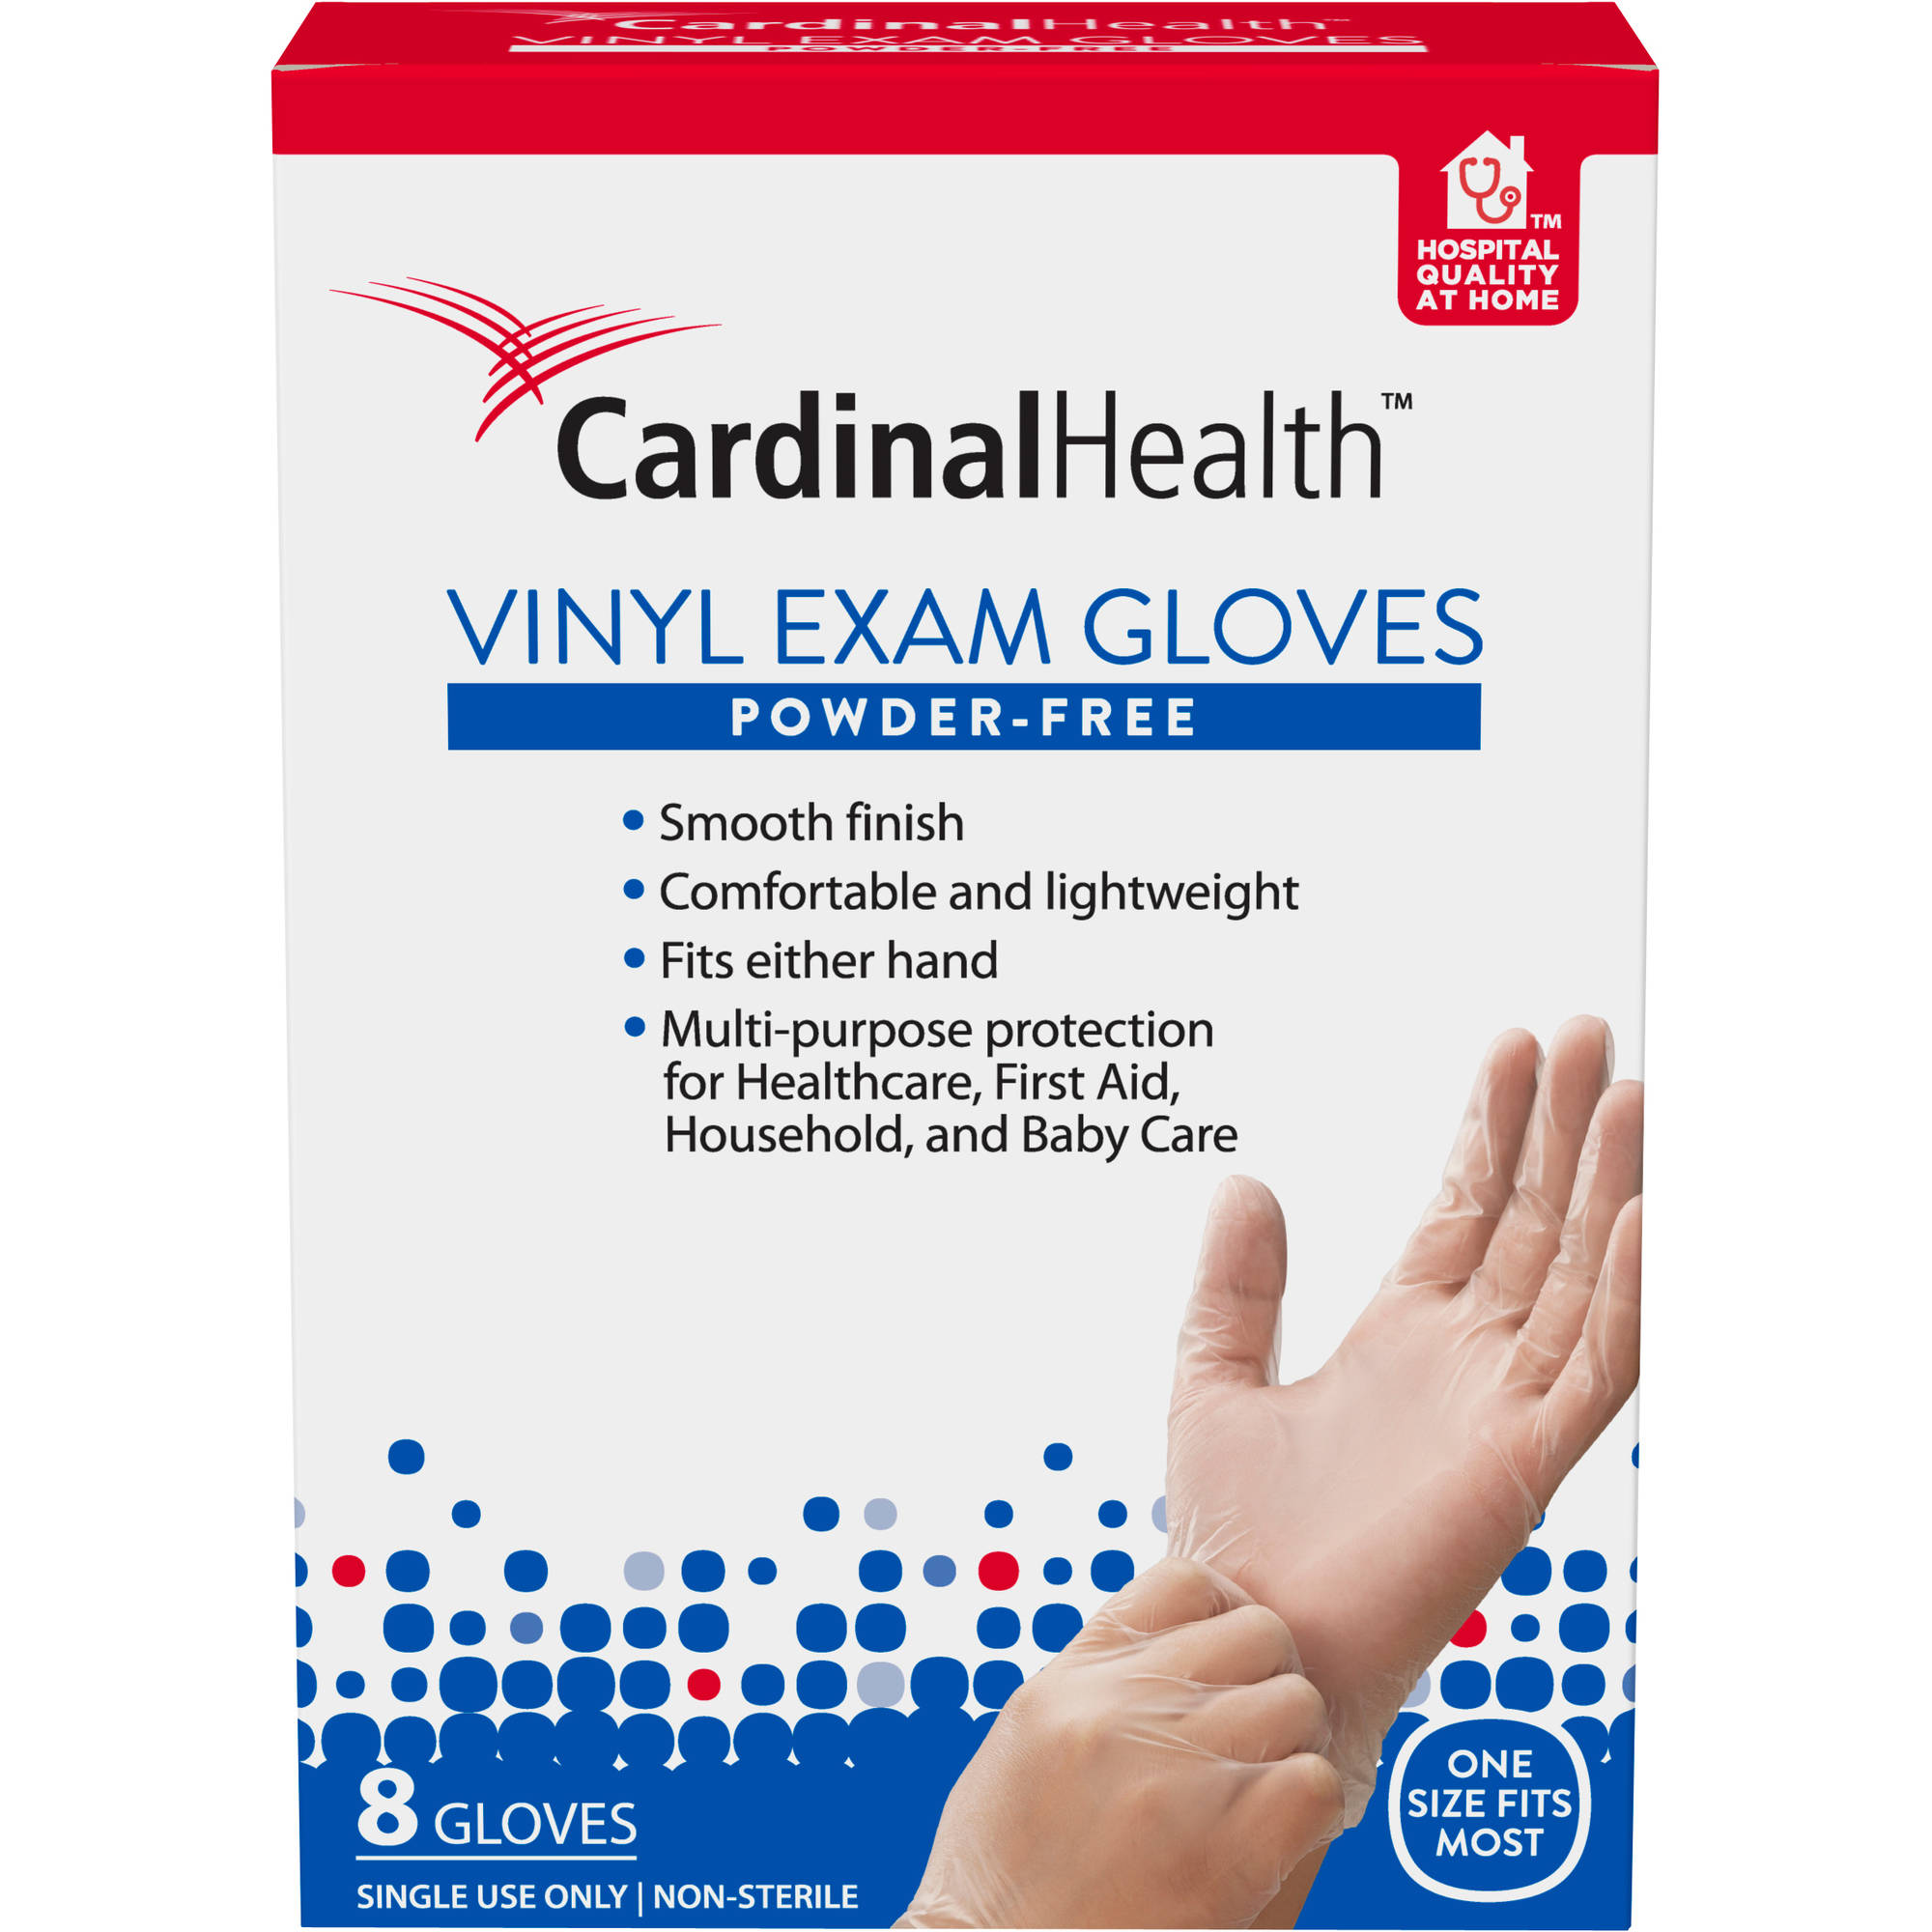 Cardinal Health Powder-Free Vinyl Exam Gloves, 8 count